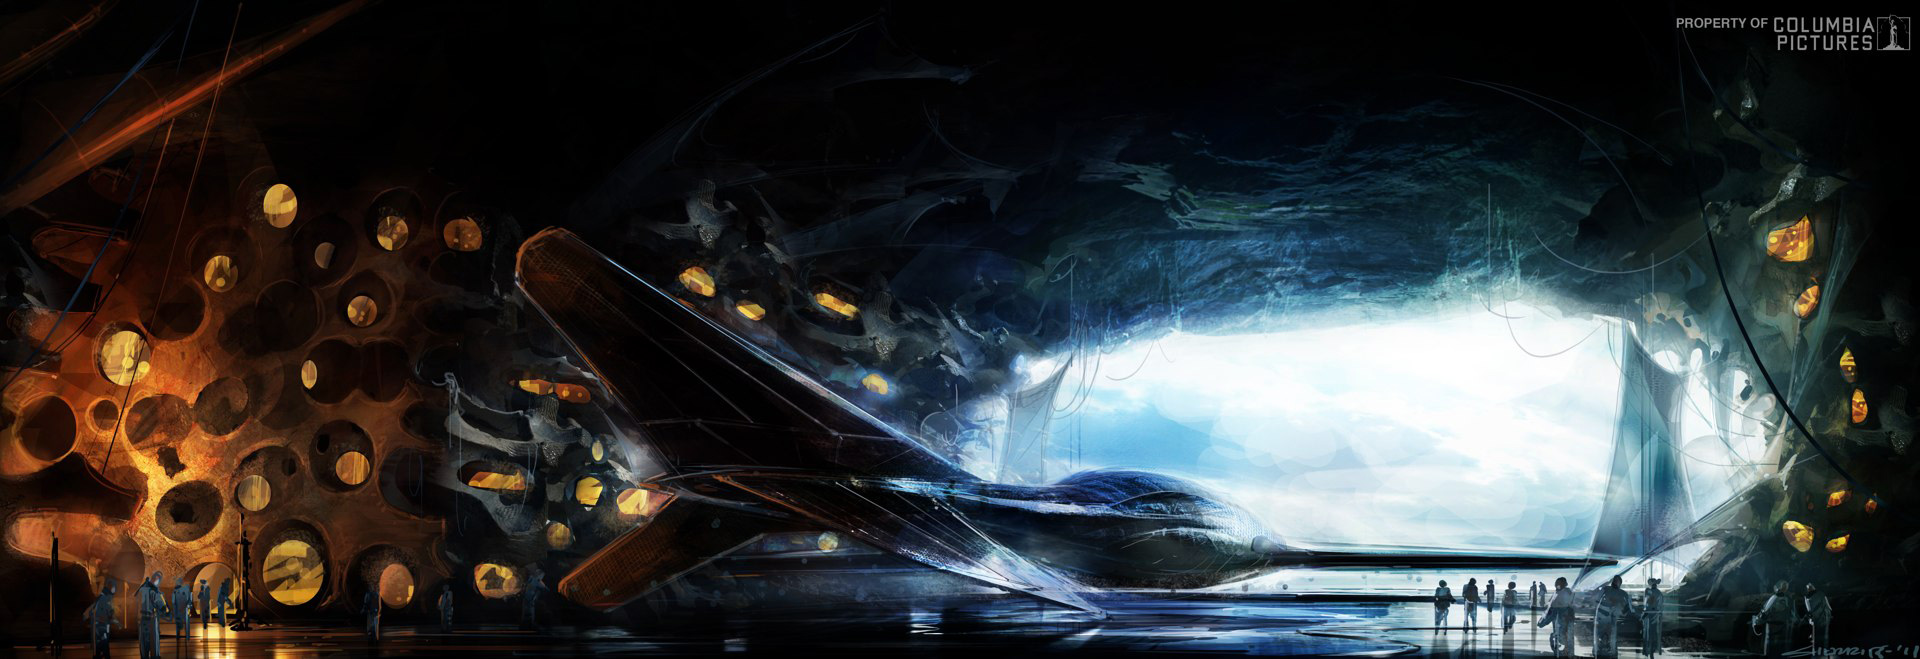 after earth concept art - photo #15